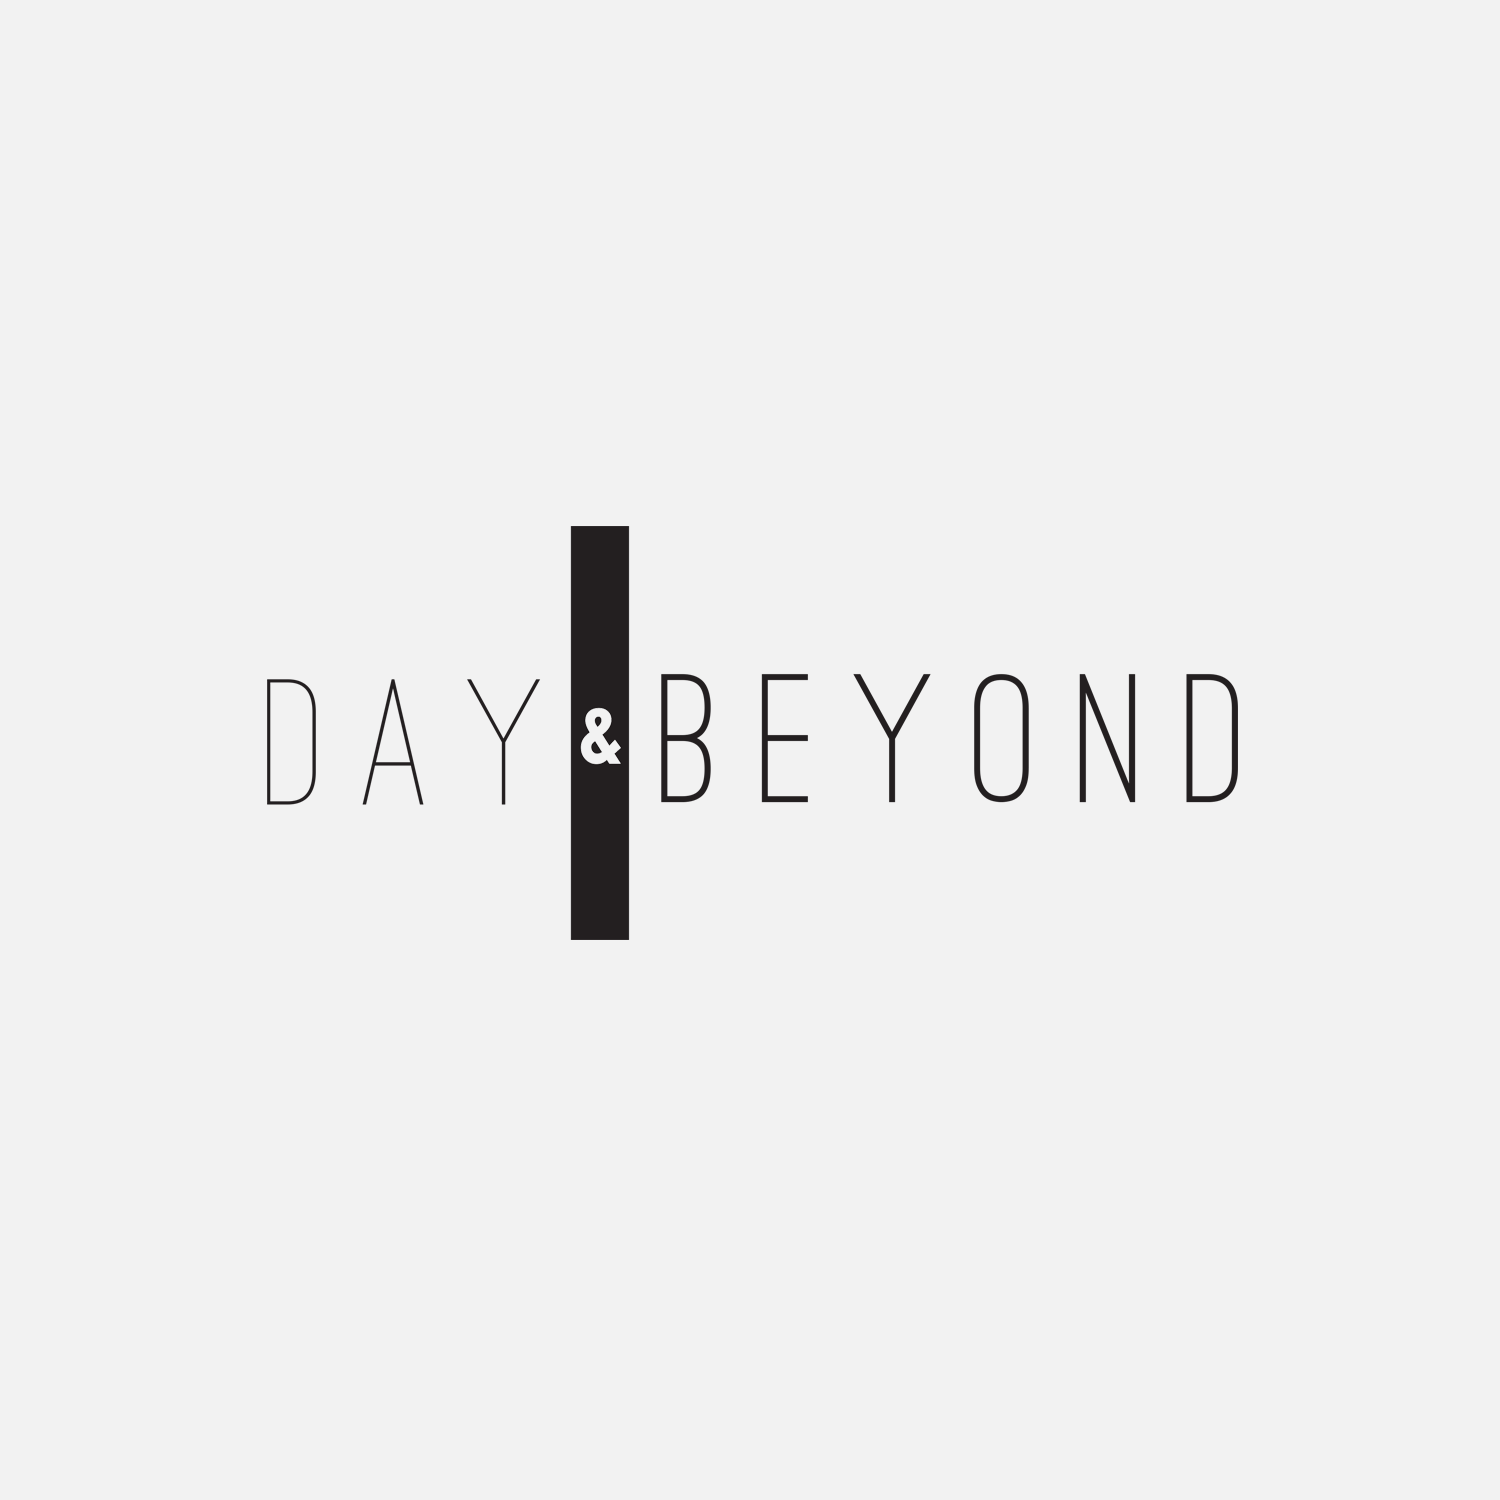 Day & Beyond Logo